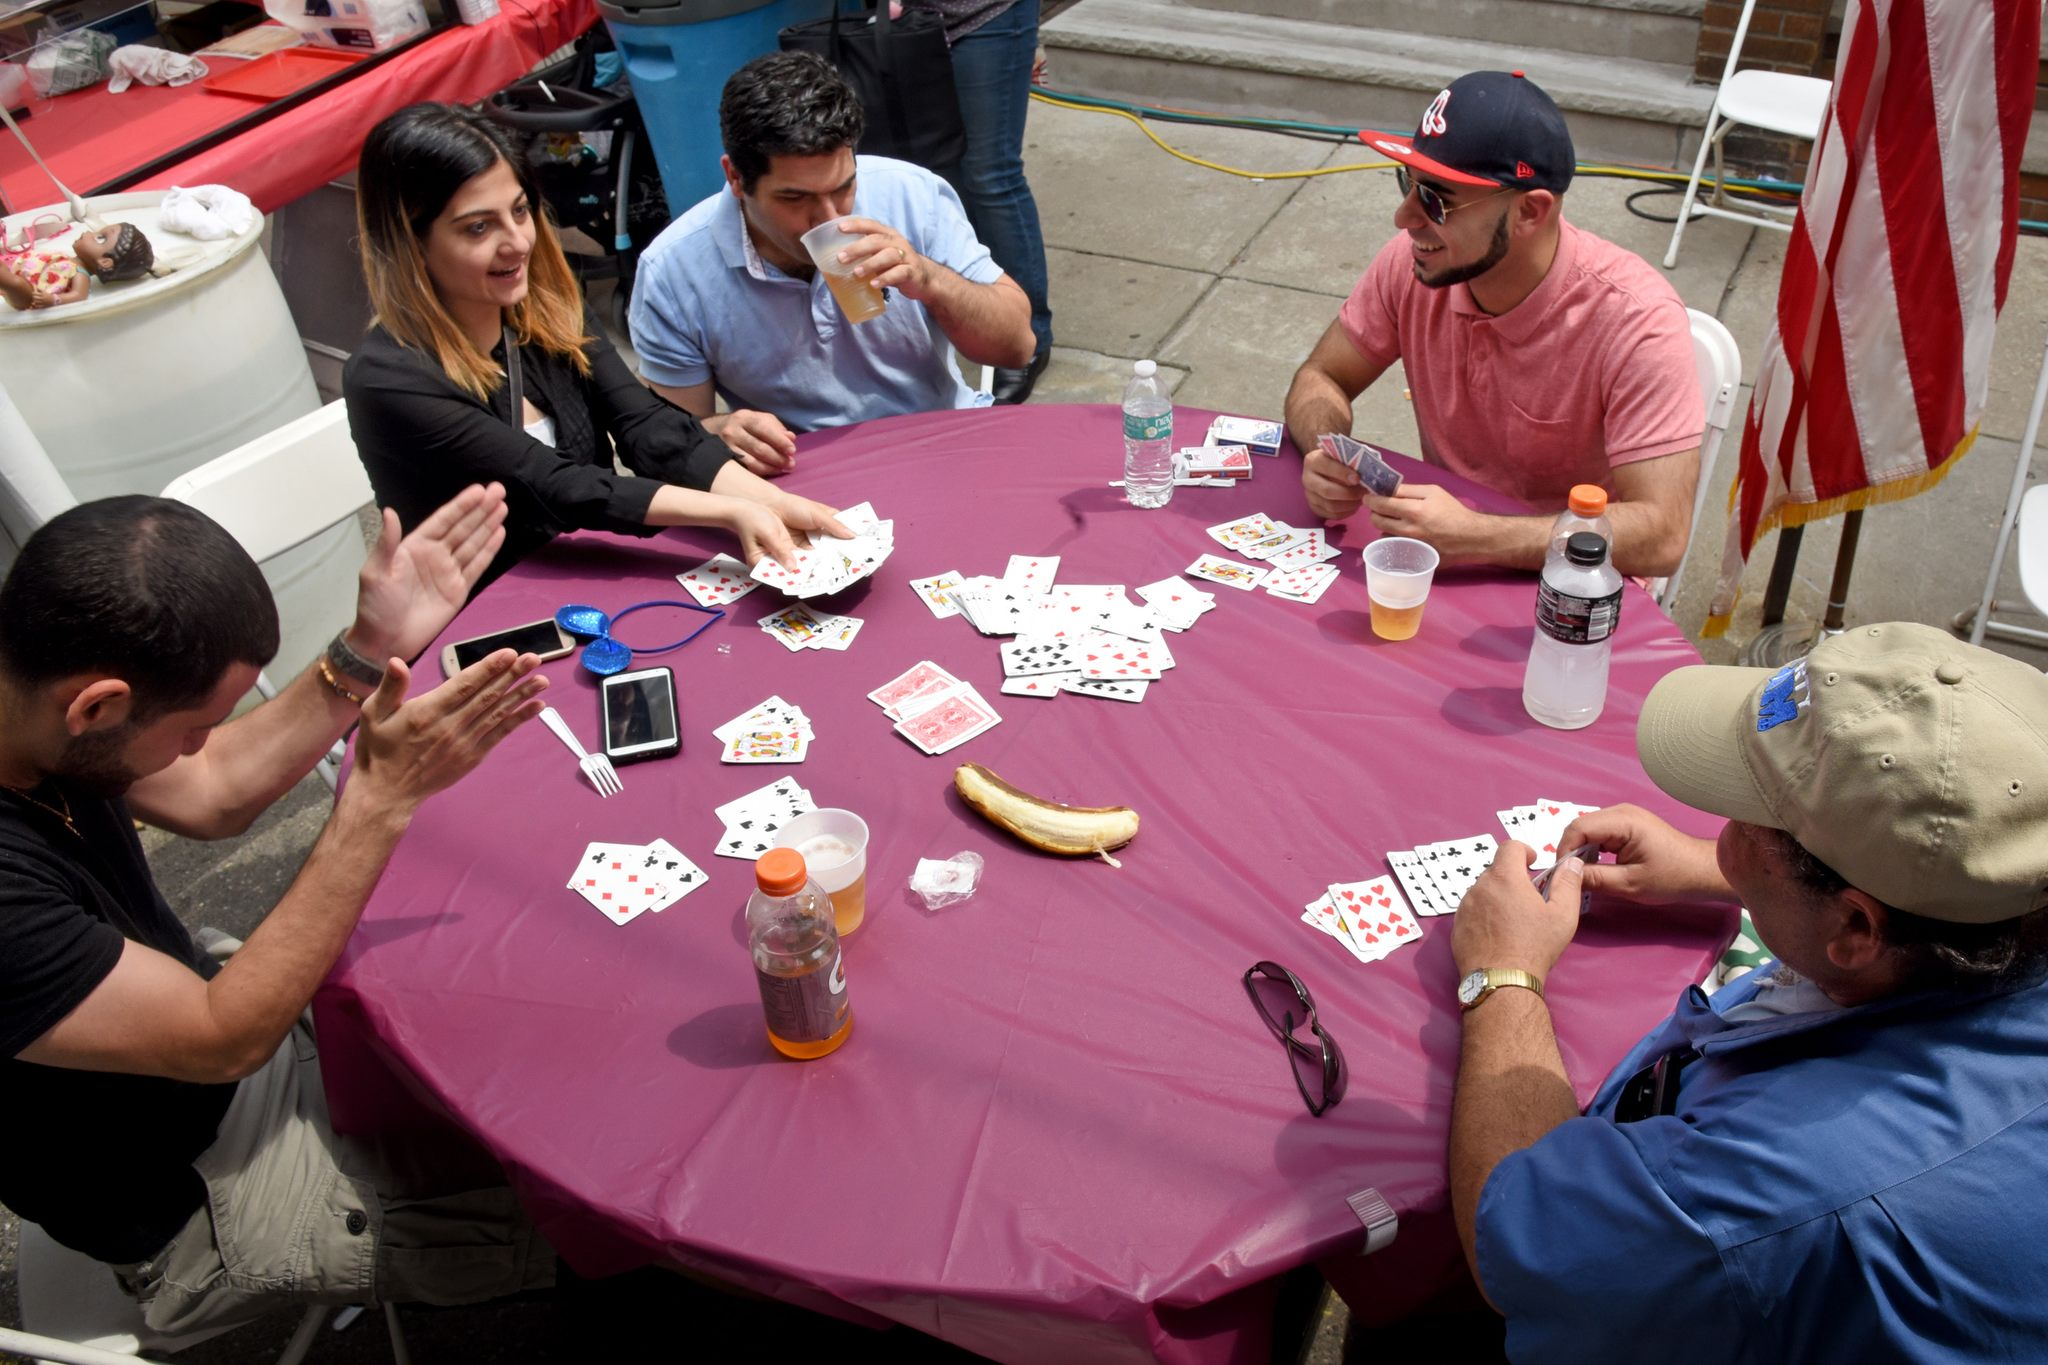 Louis Al-Shouli (left) celebrates his victory in a rummy game of Kalooki 51 with his cousins, all from South Philadelphia, Maryam Takfoor (from left), Tony Takfoor, Chris Sholy, and Anwar Muaddi.